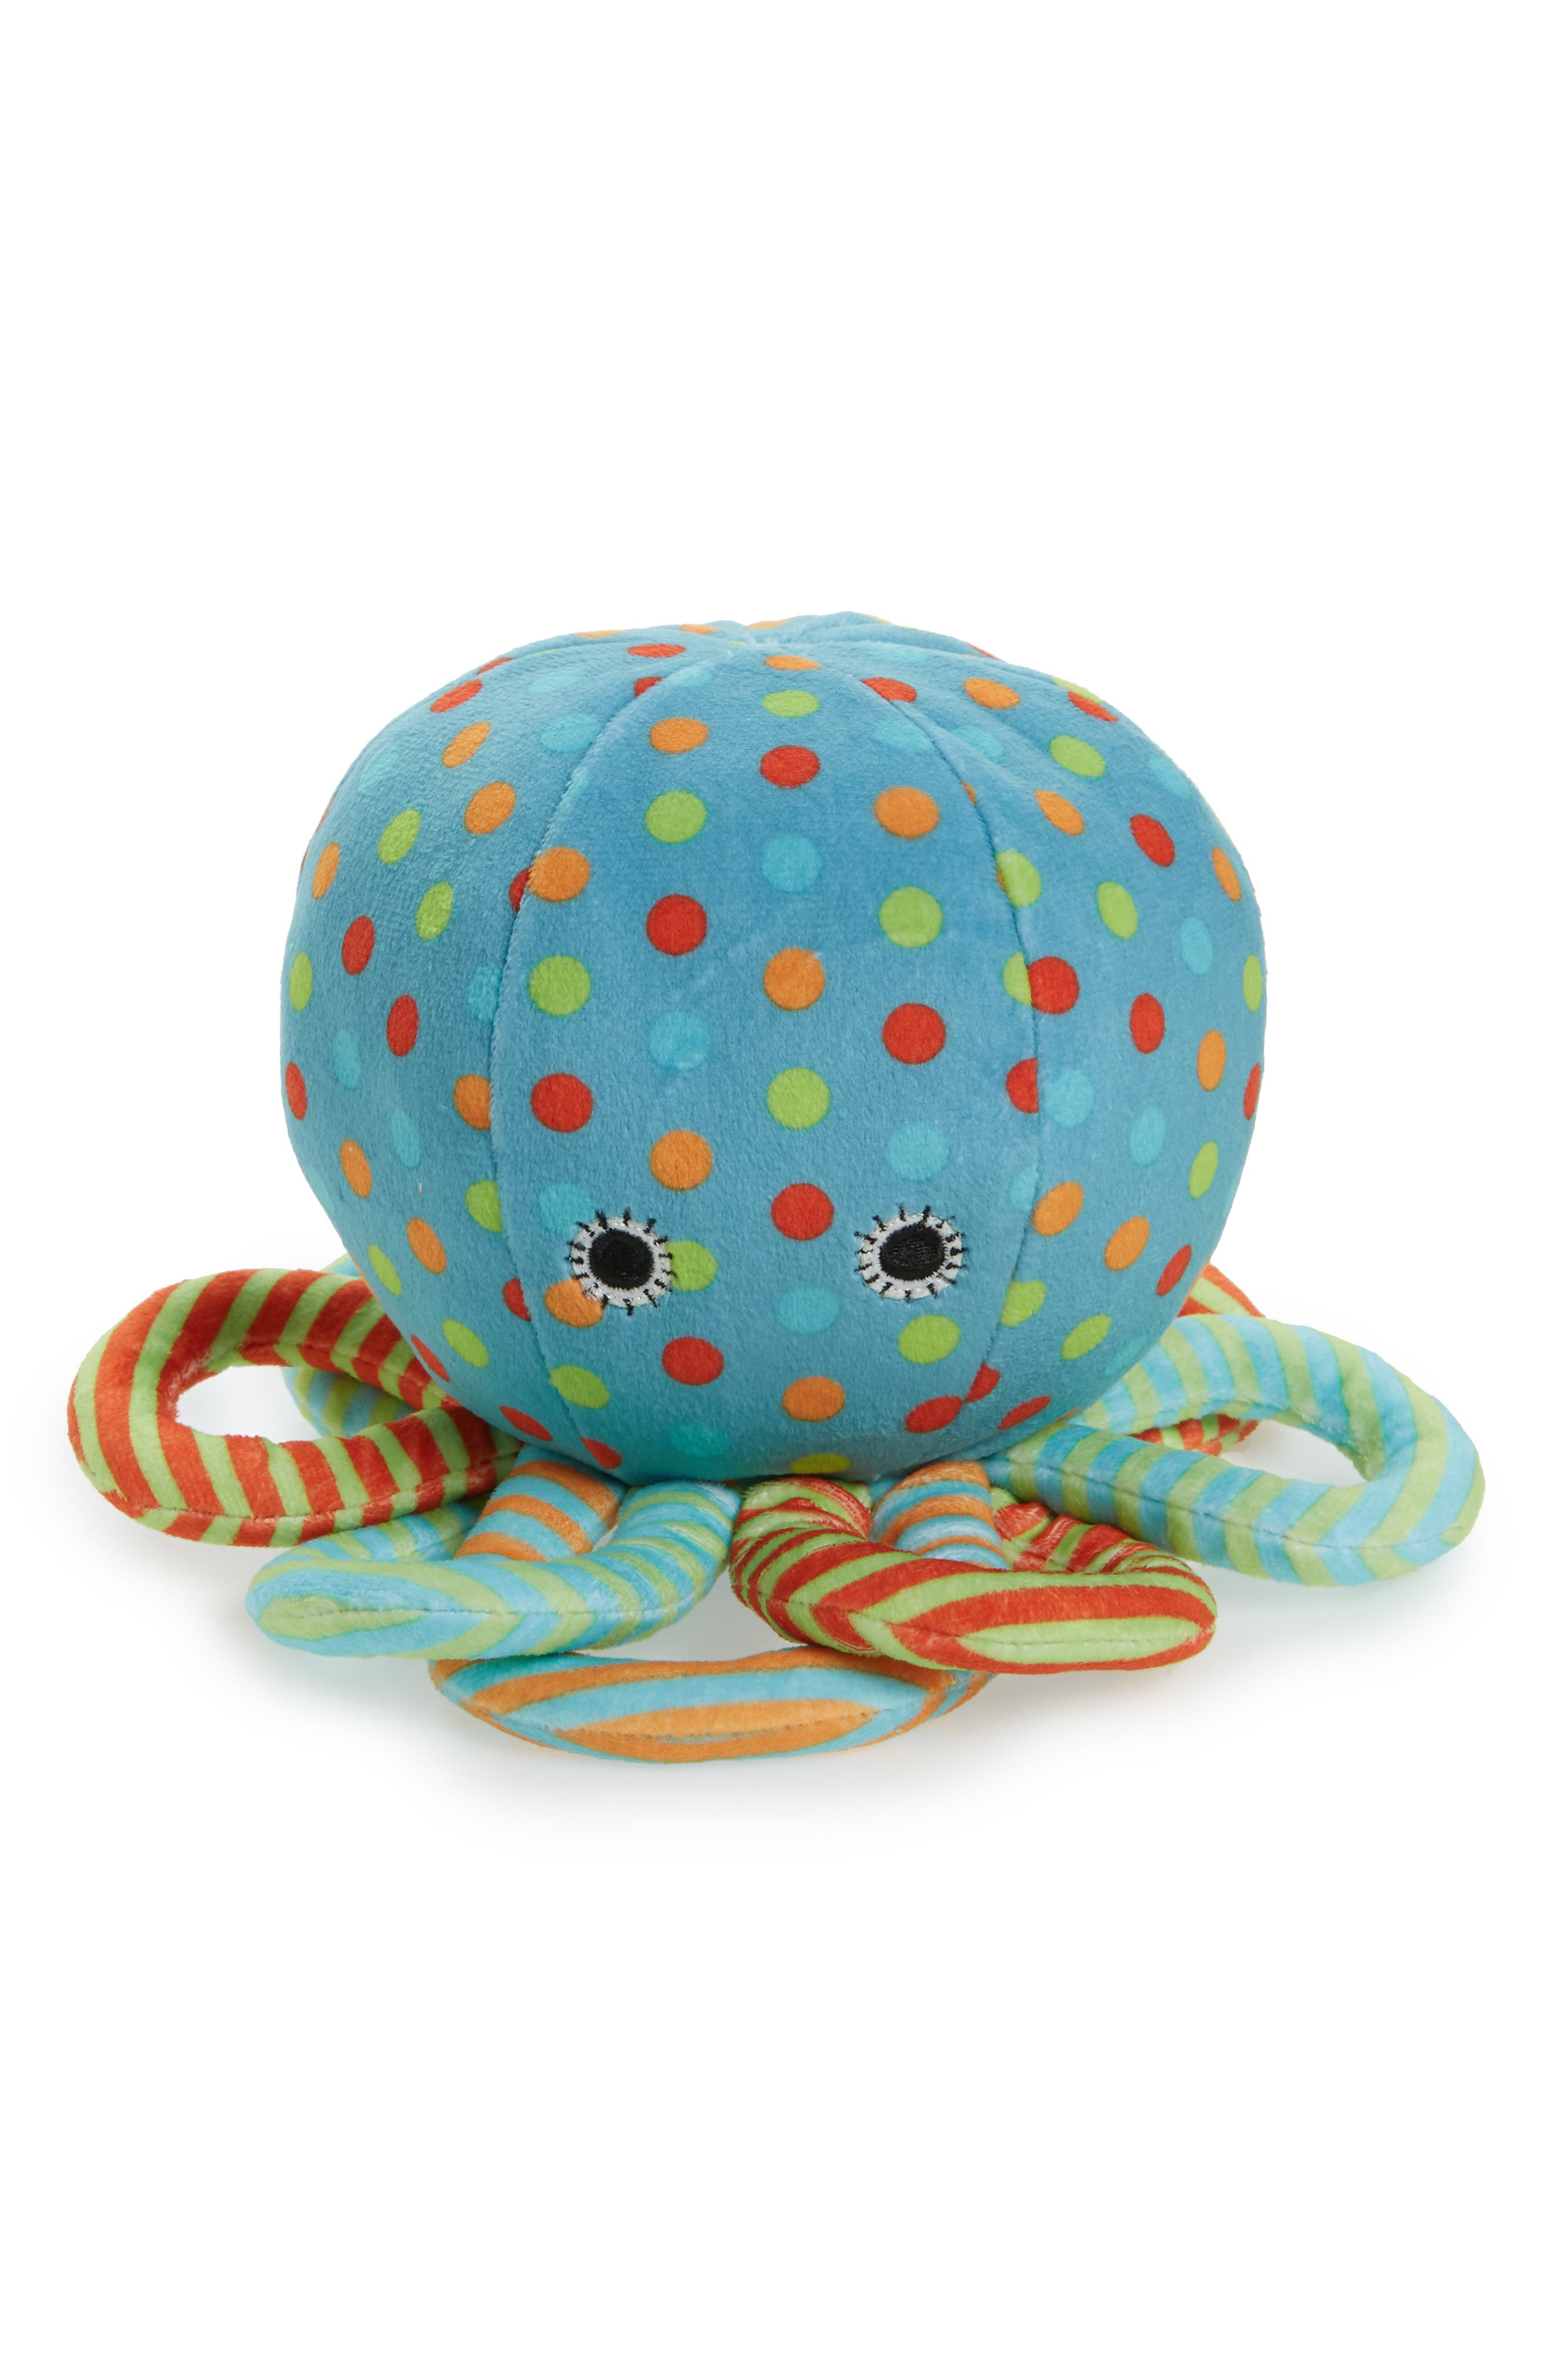 Main Image - Jellycat Octopus Chime